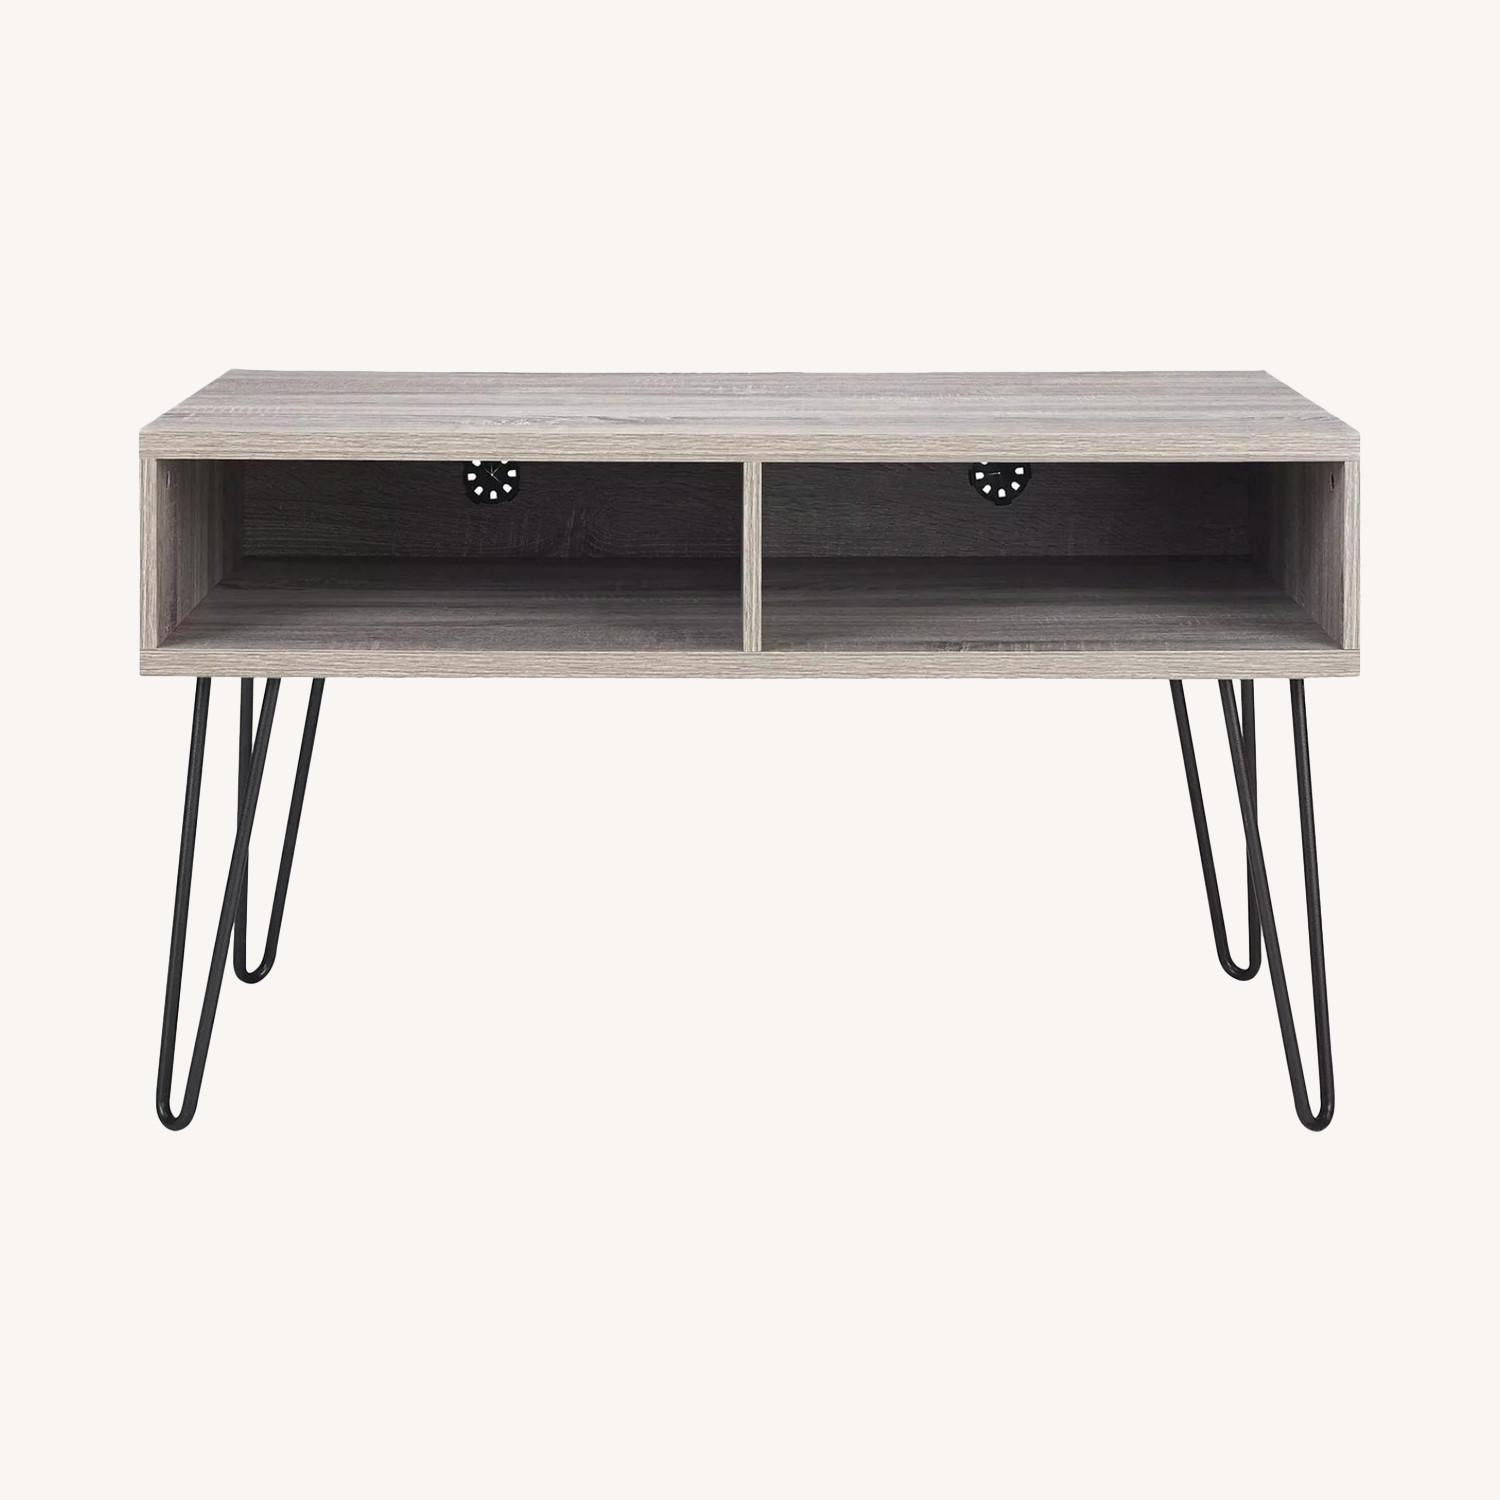 TV Stand with Hairpin Metal legs - image-0